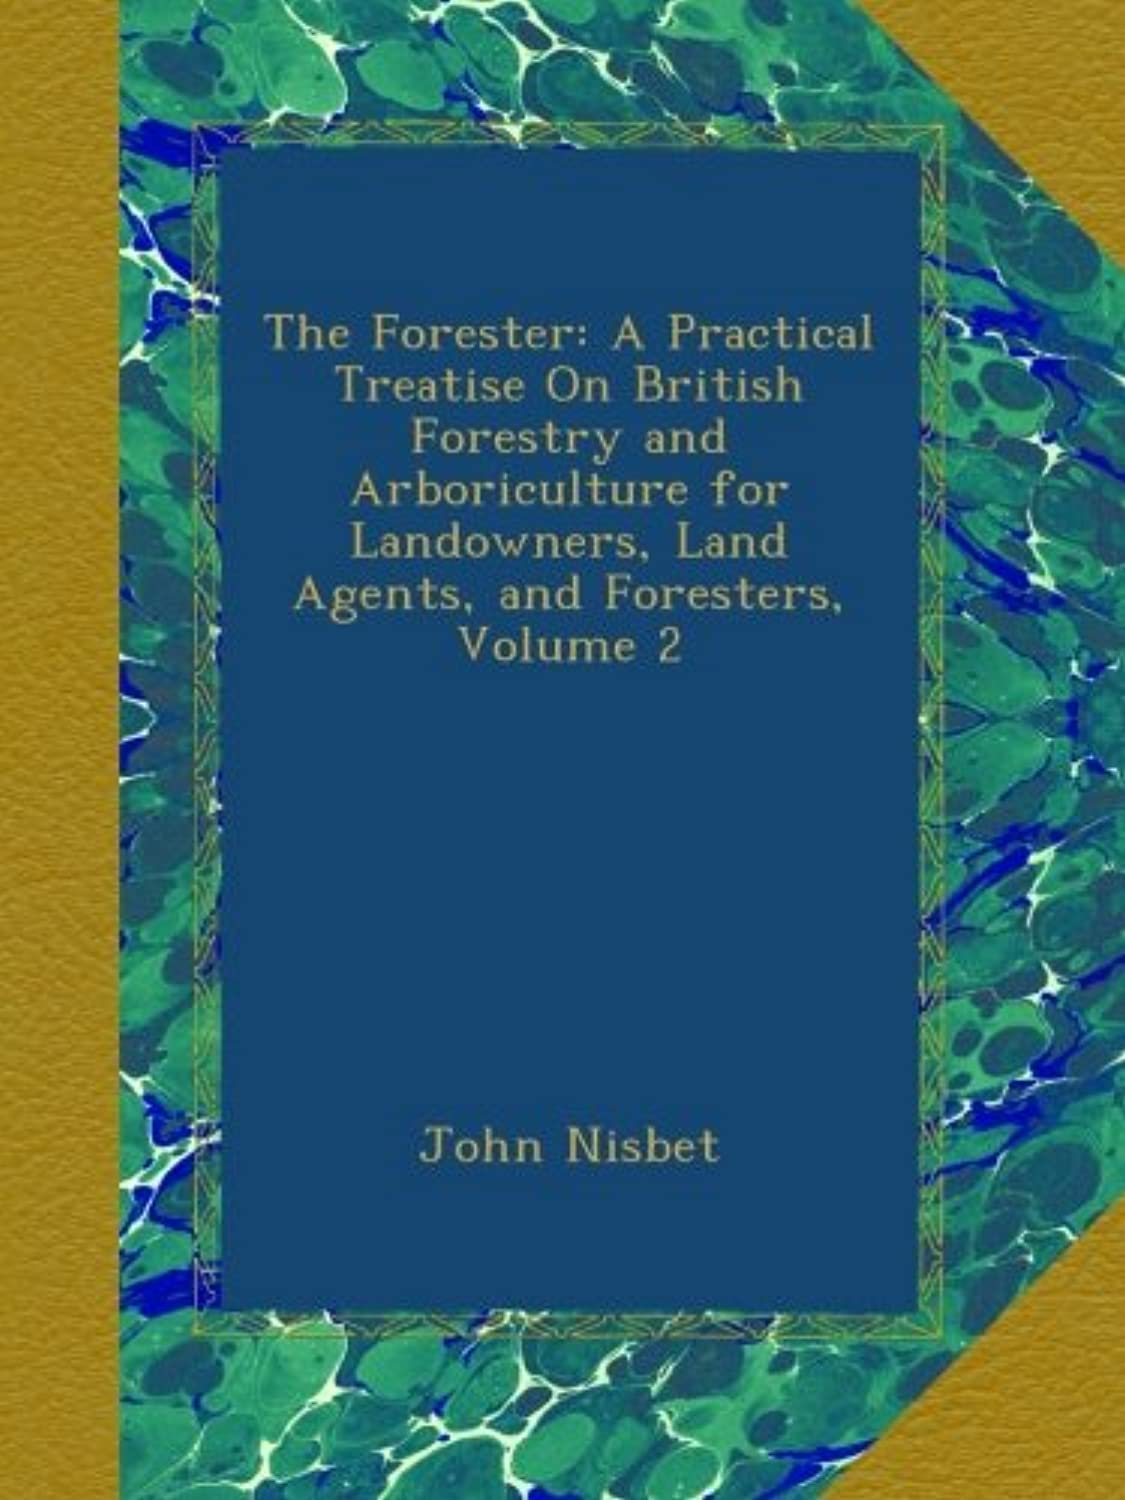 The Forester: A Practical Treatise On British Forestry and Arboriculture for Landowners, Land Agents, and Foresters, Volume 2